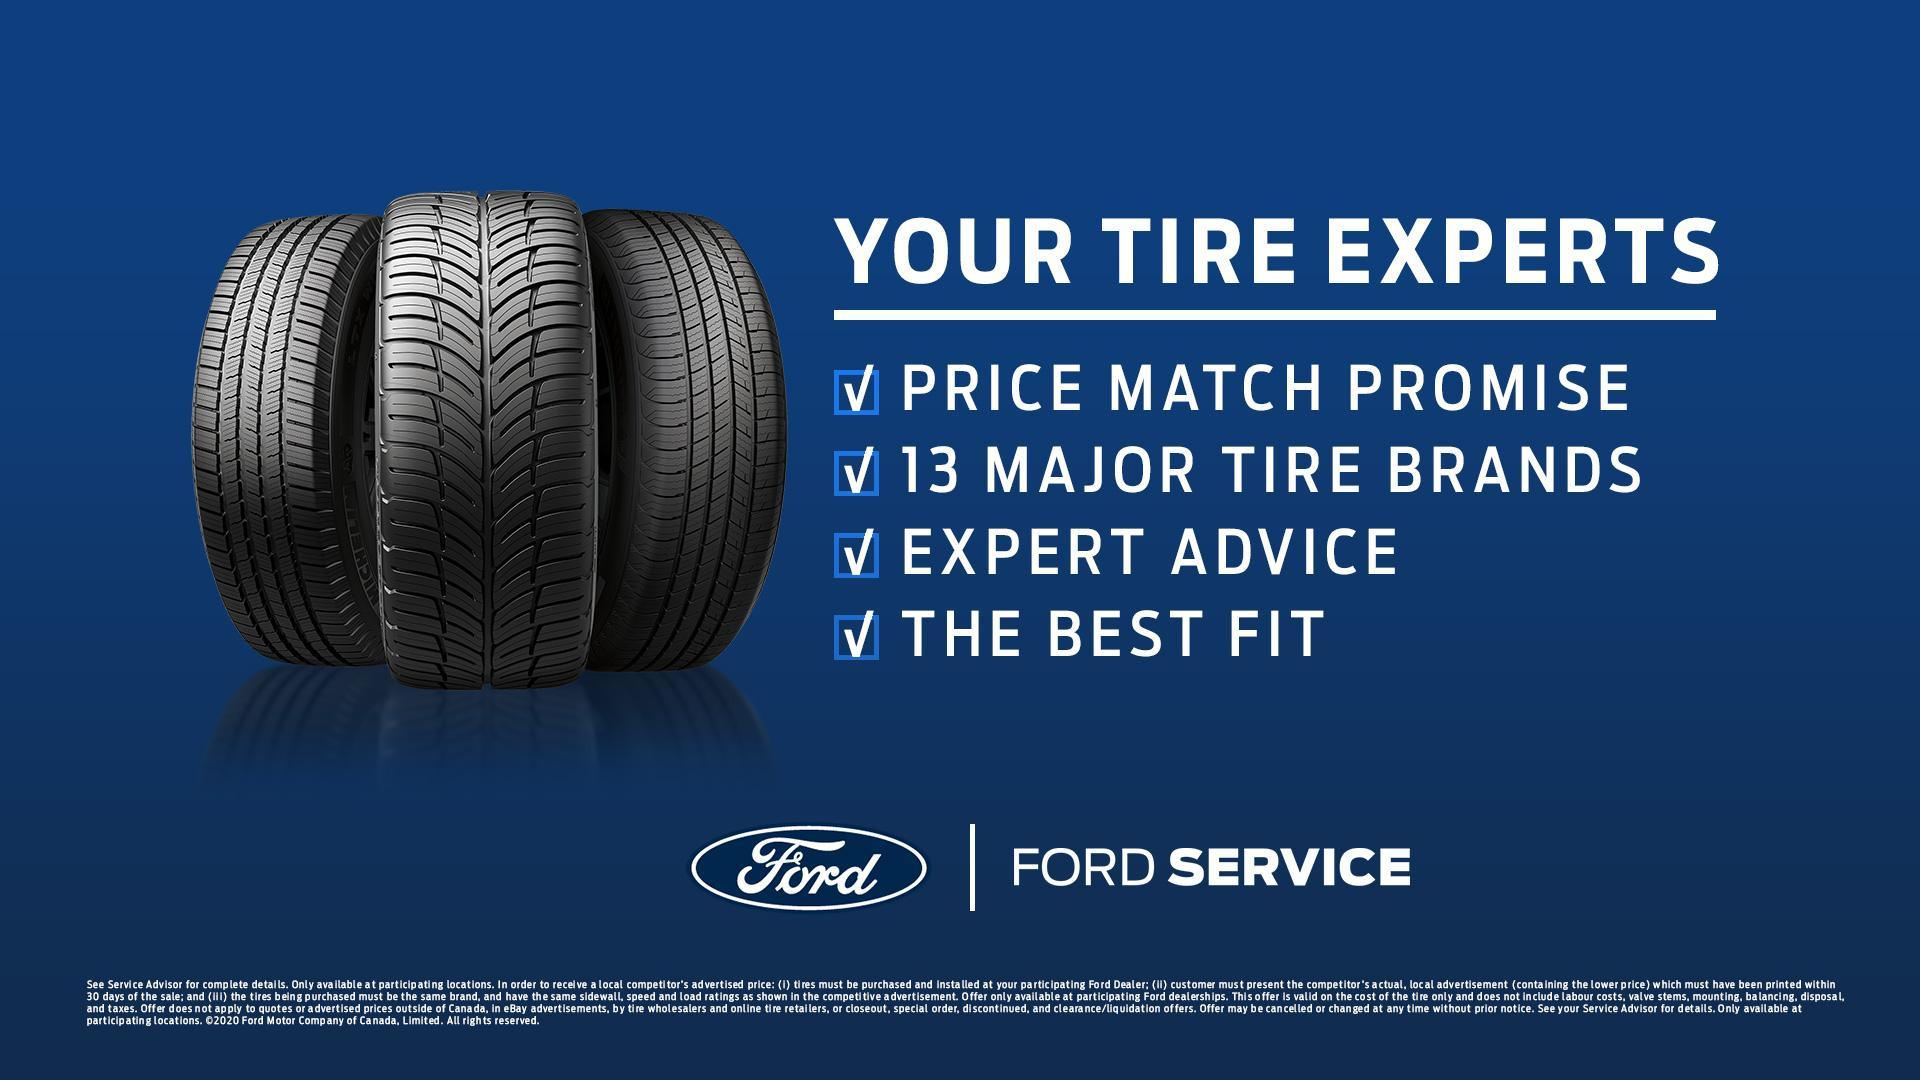 Ford Tires image